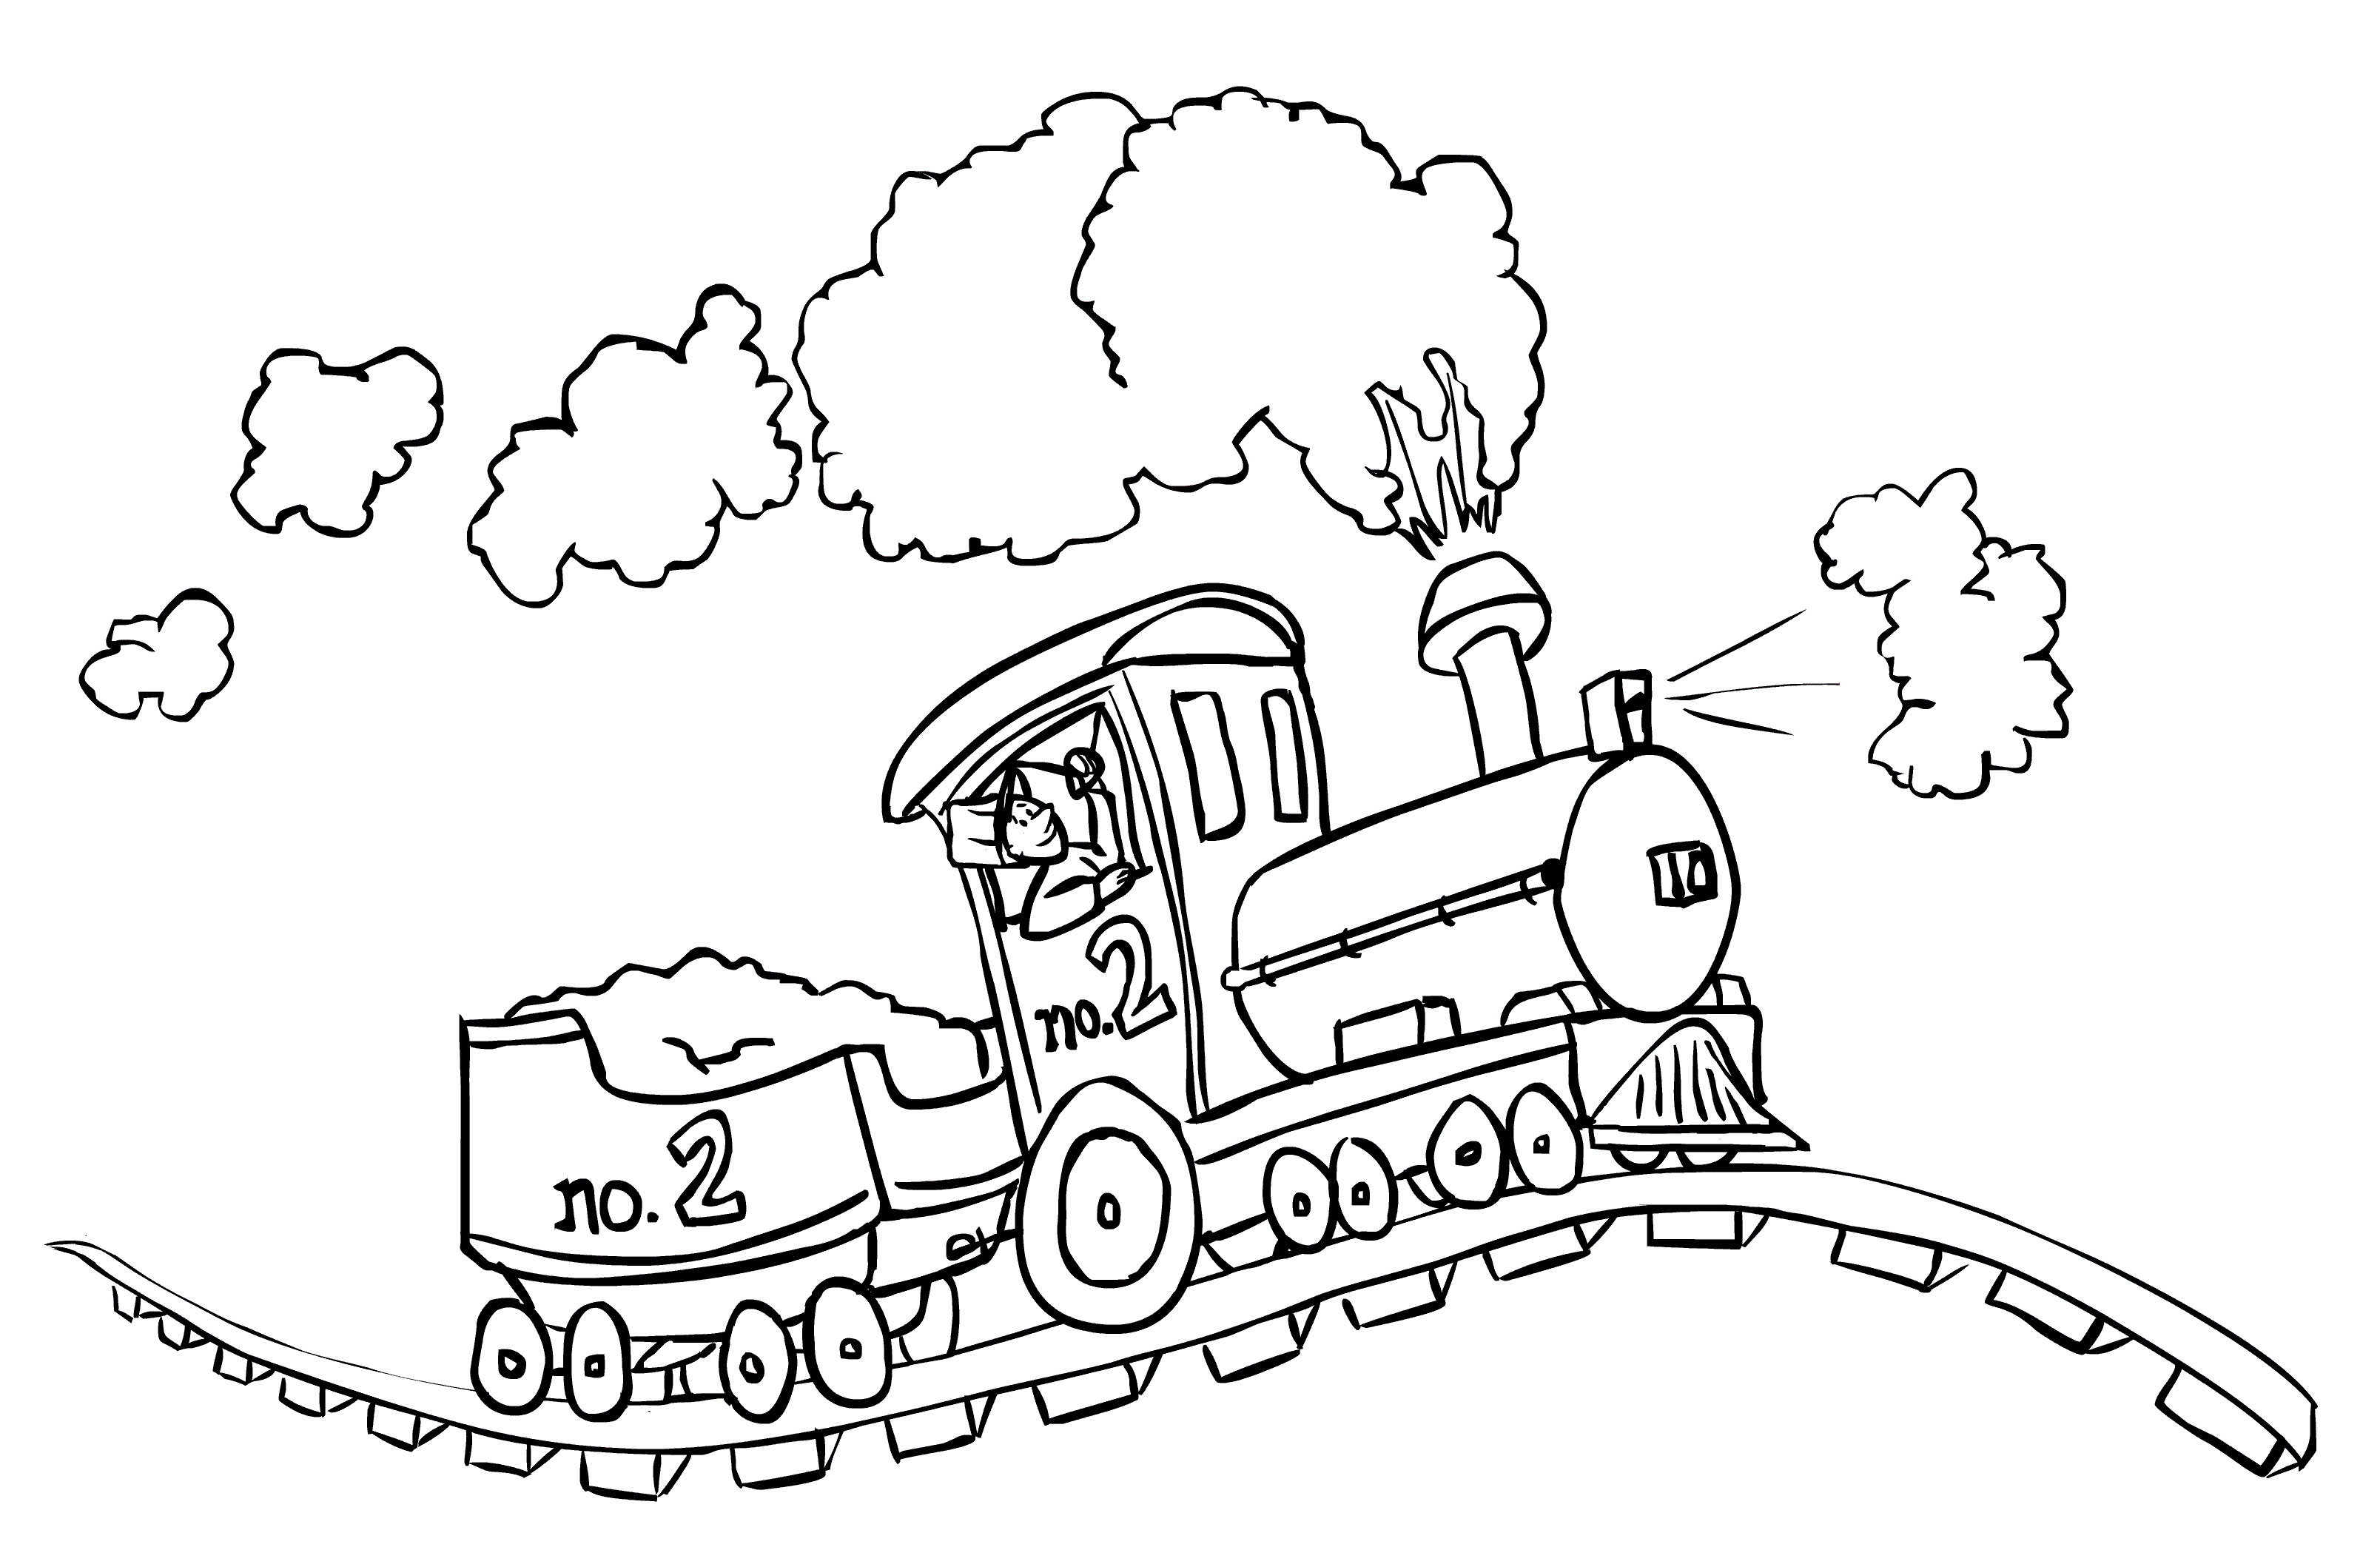 train coloring pages for kids - Free Download Coloring Pages